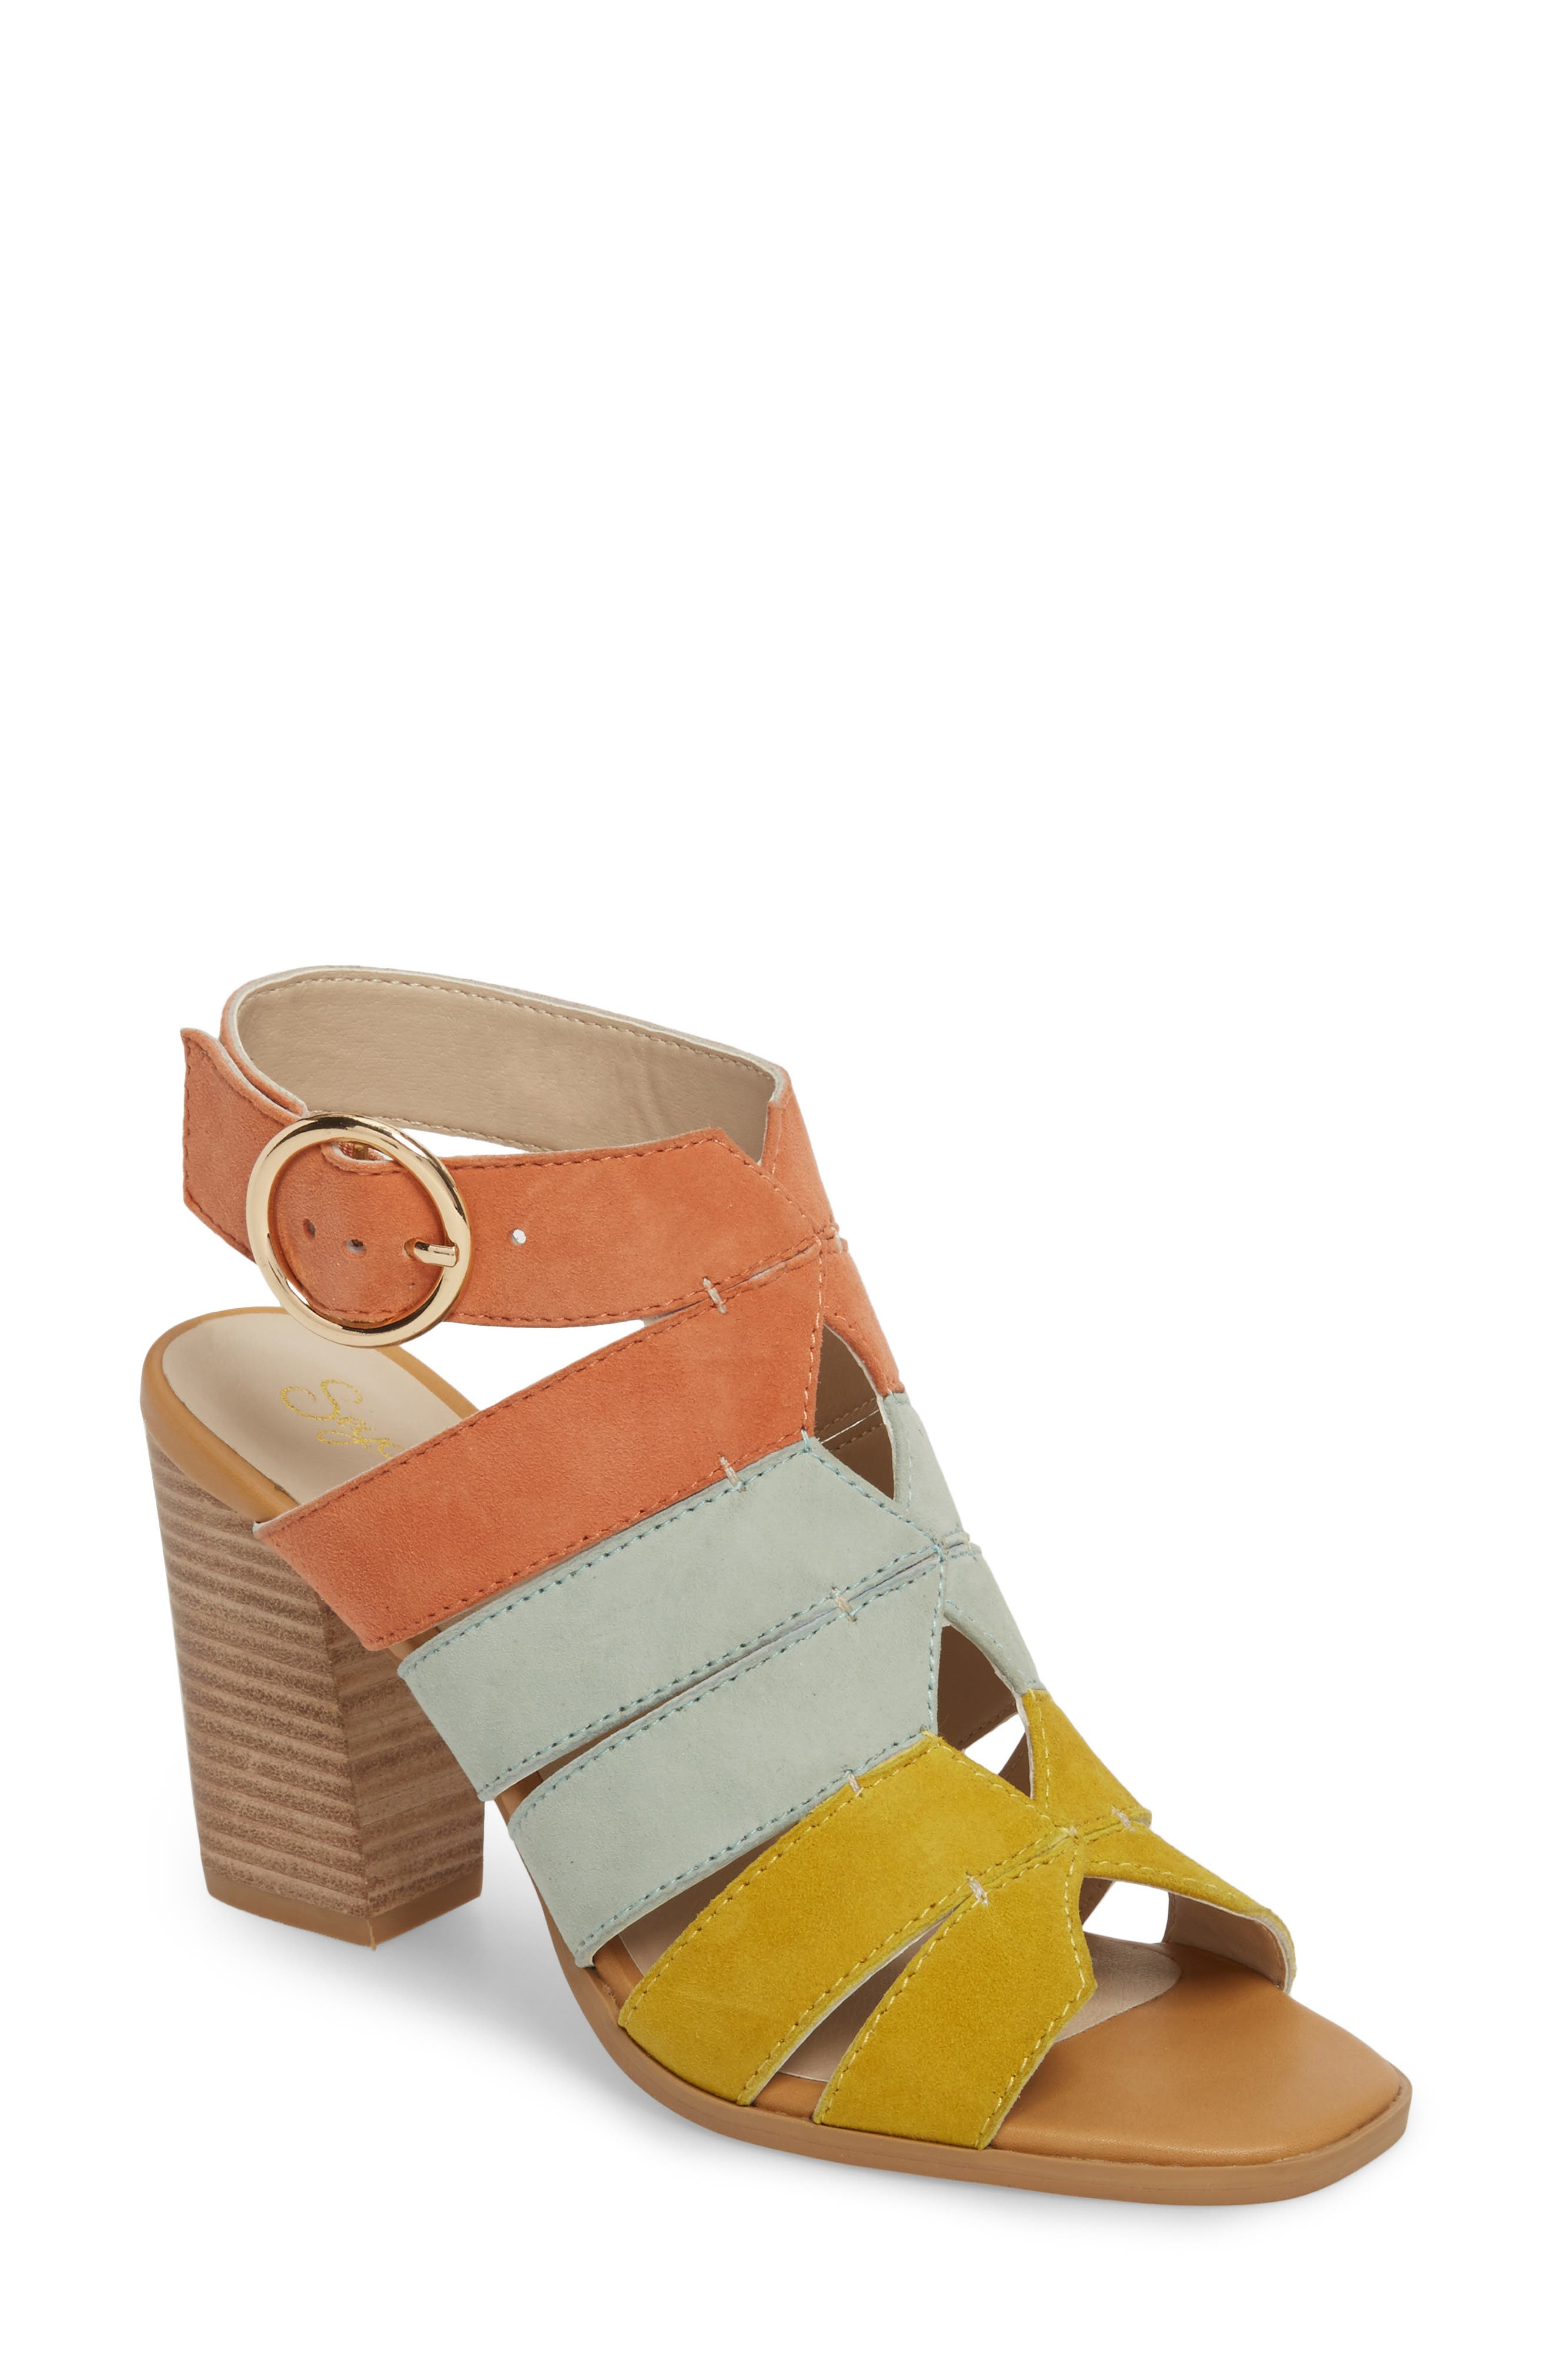 Completely Engaged Sandal,                         Main,                         color, PASTEL MULTI SUEDE